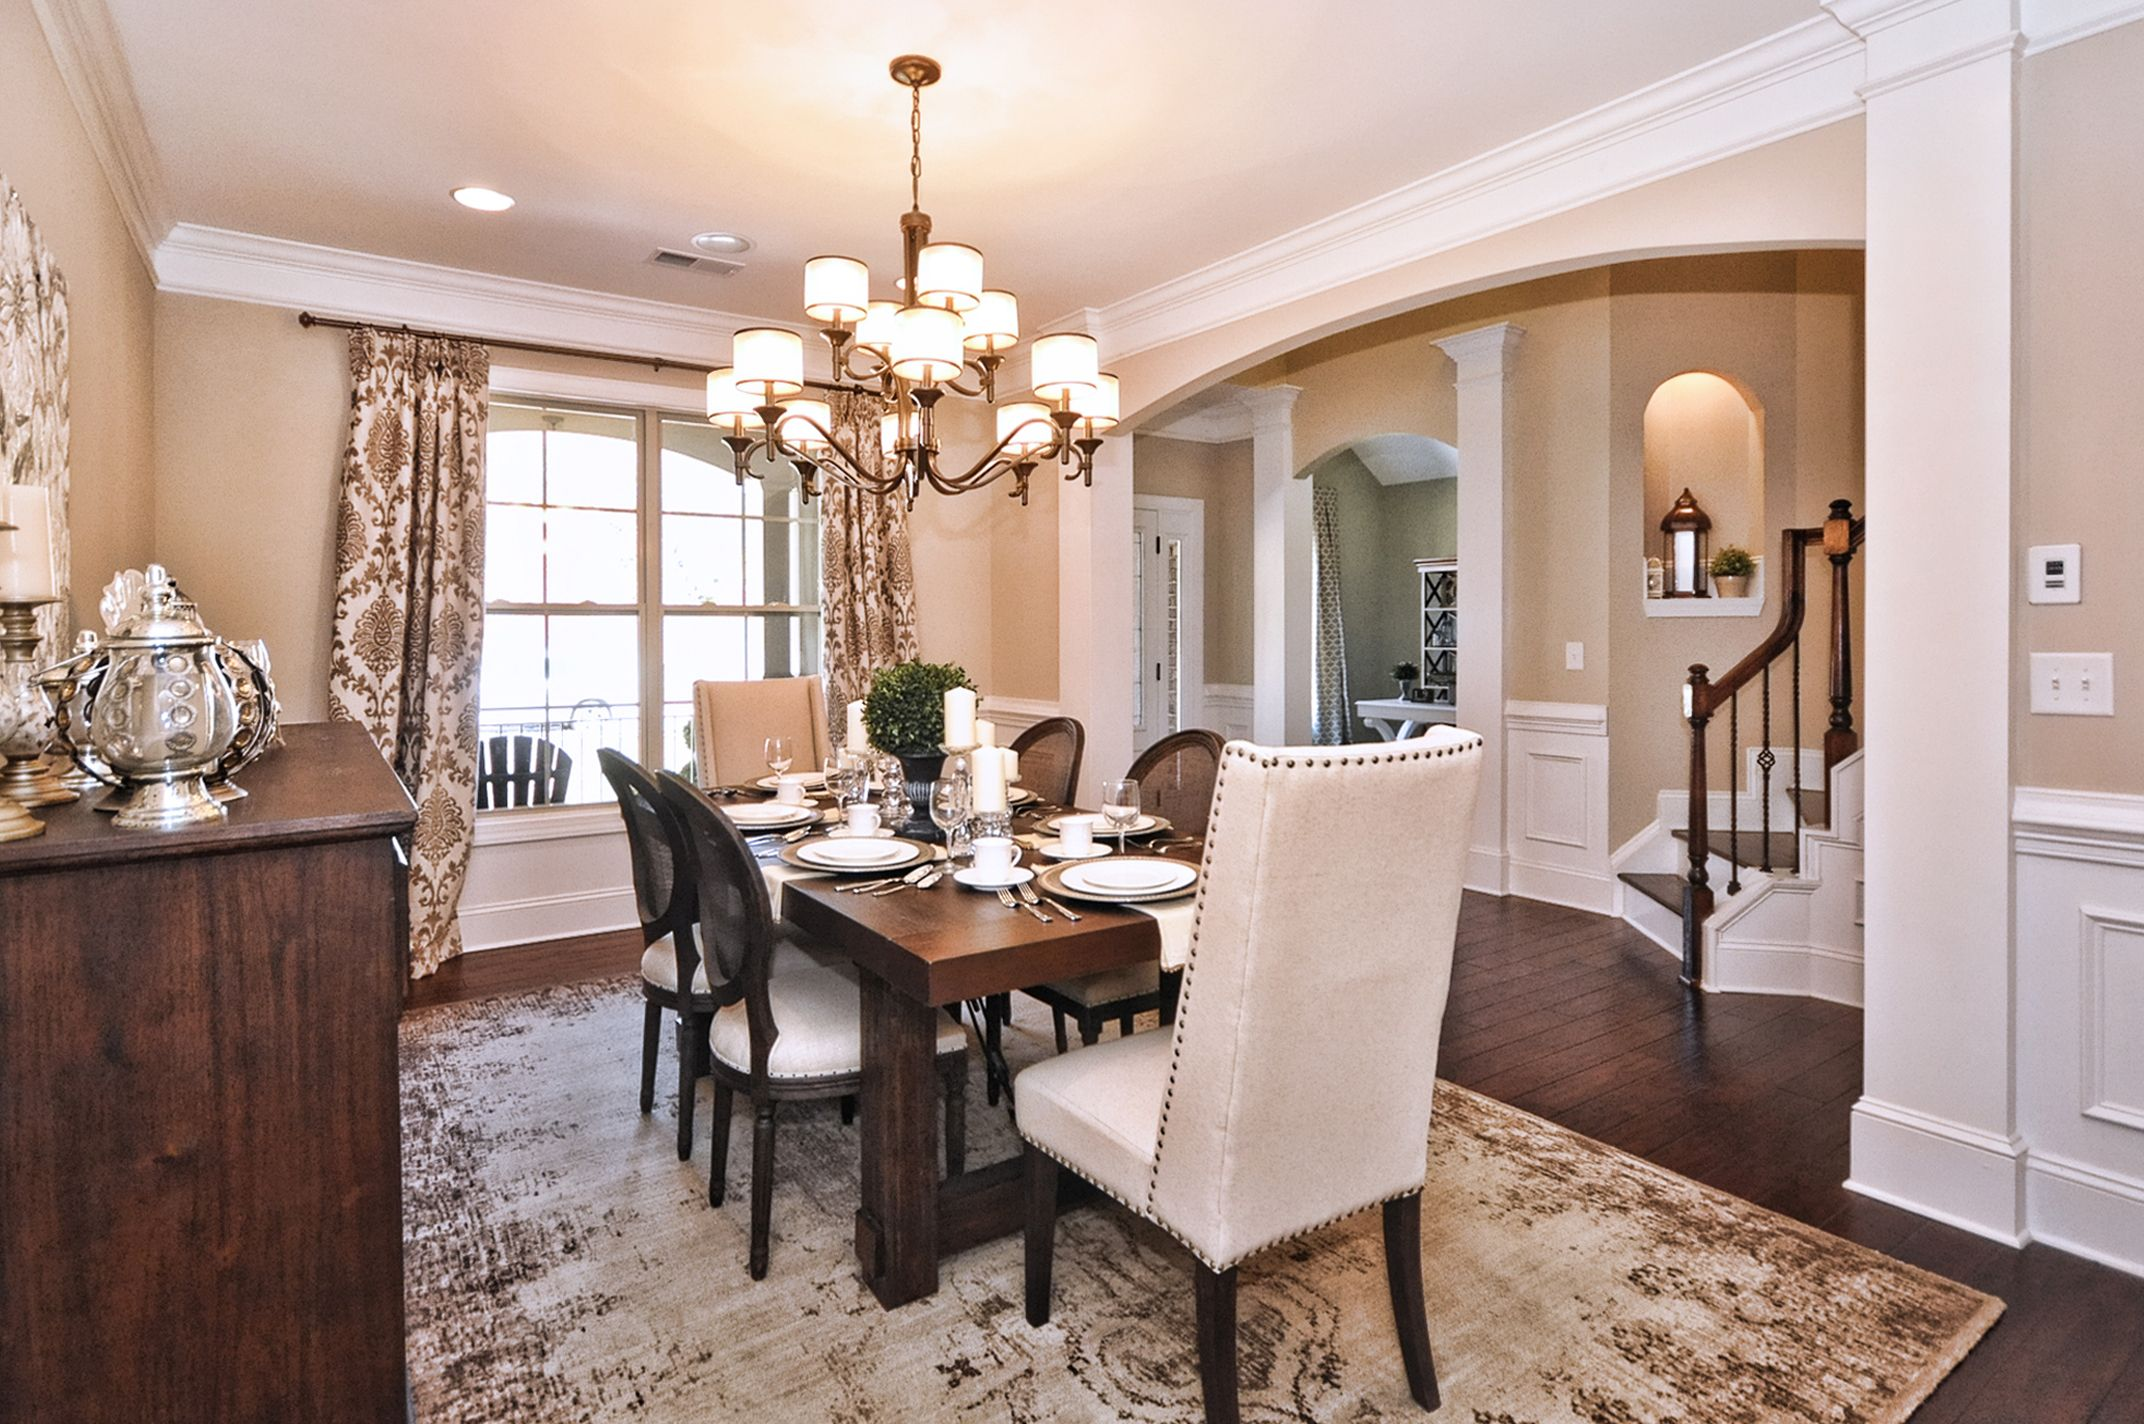 Essex homes katherine model dining room sherwin williams accessible beige kichler lacey - Kichler dining room lighting ideas ...